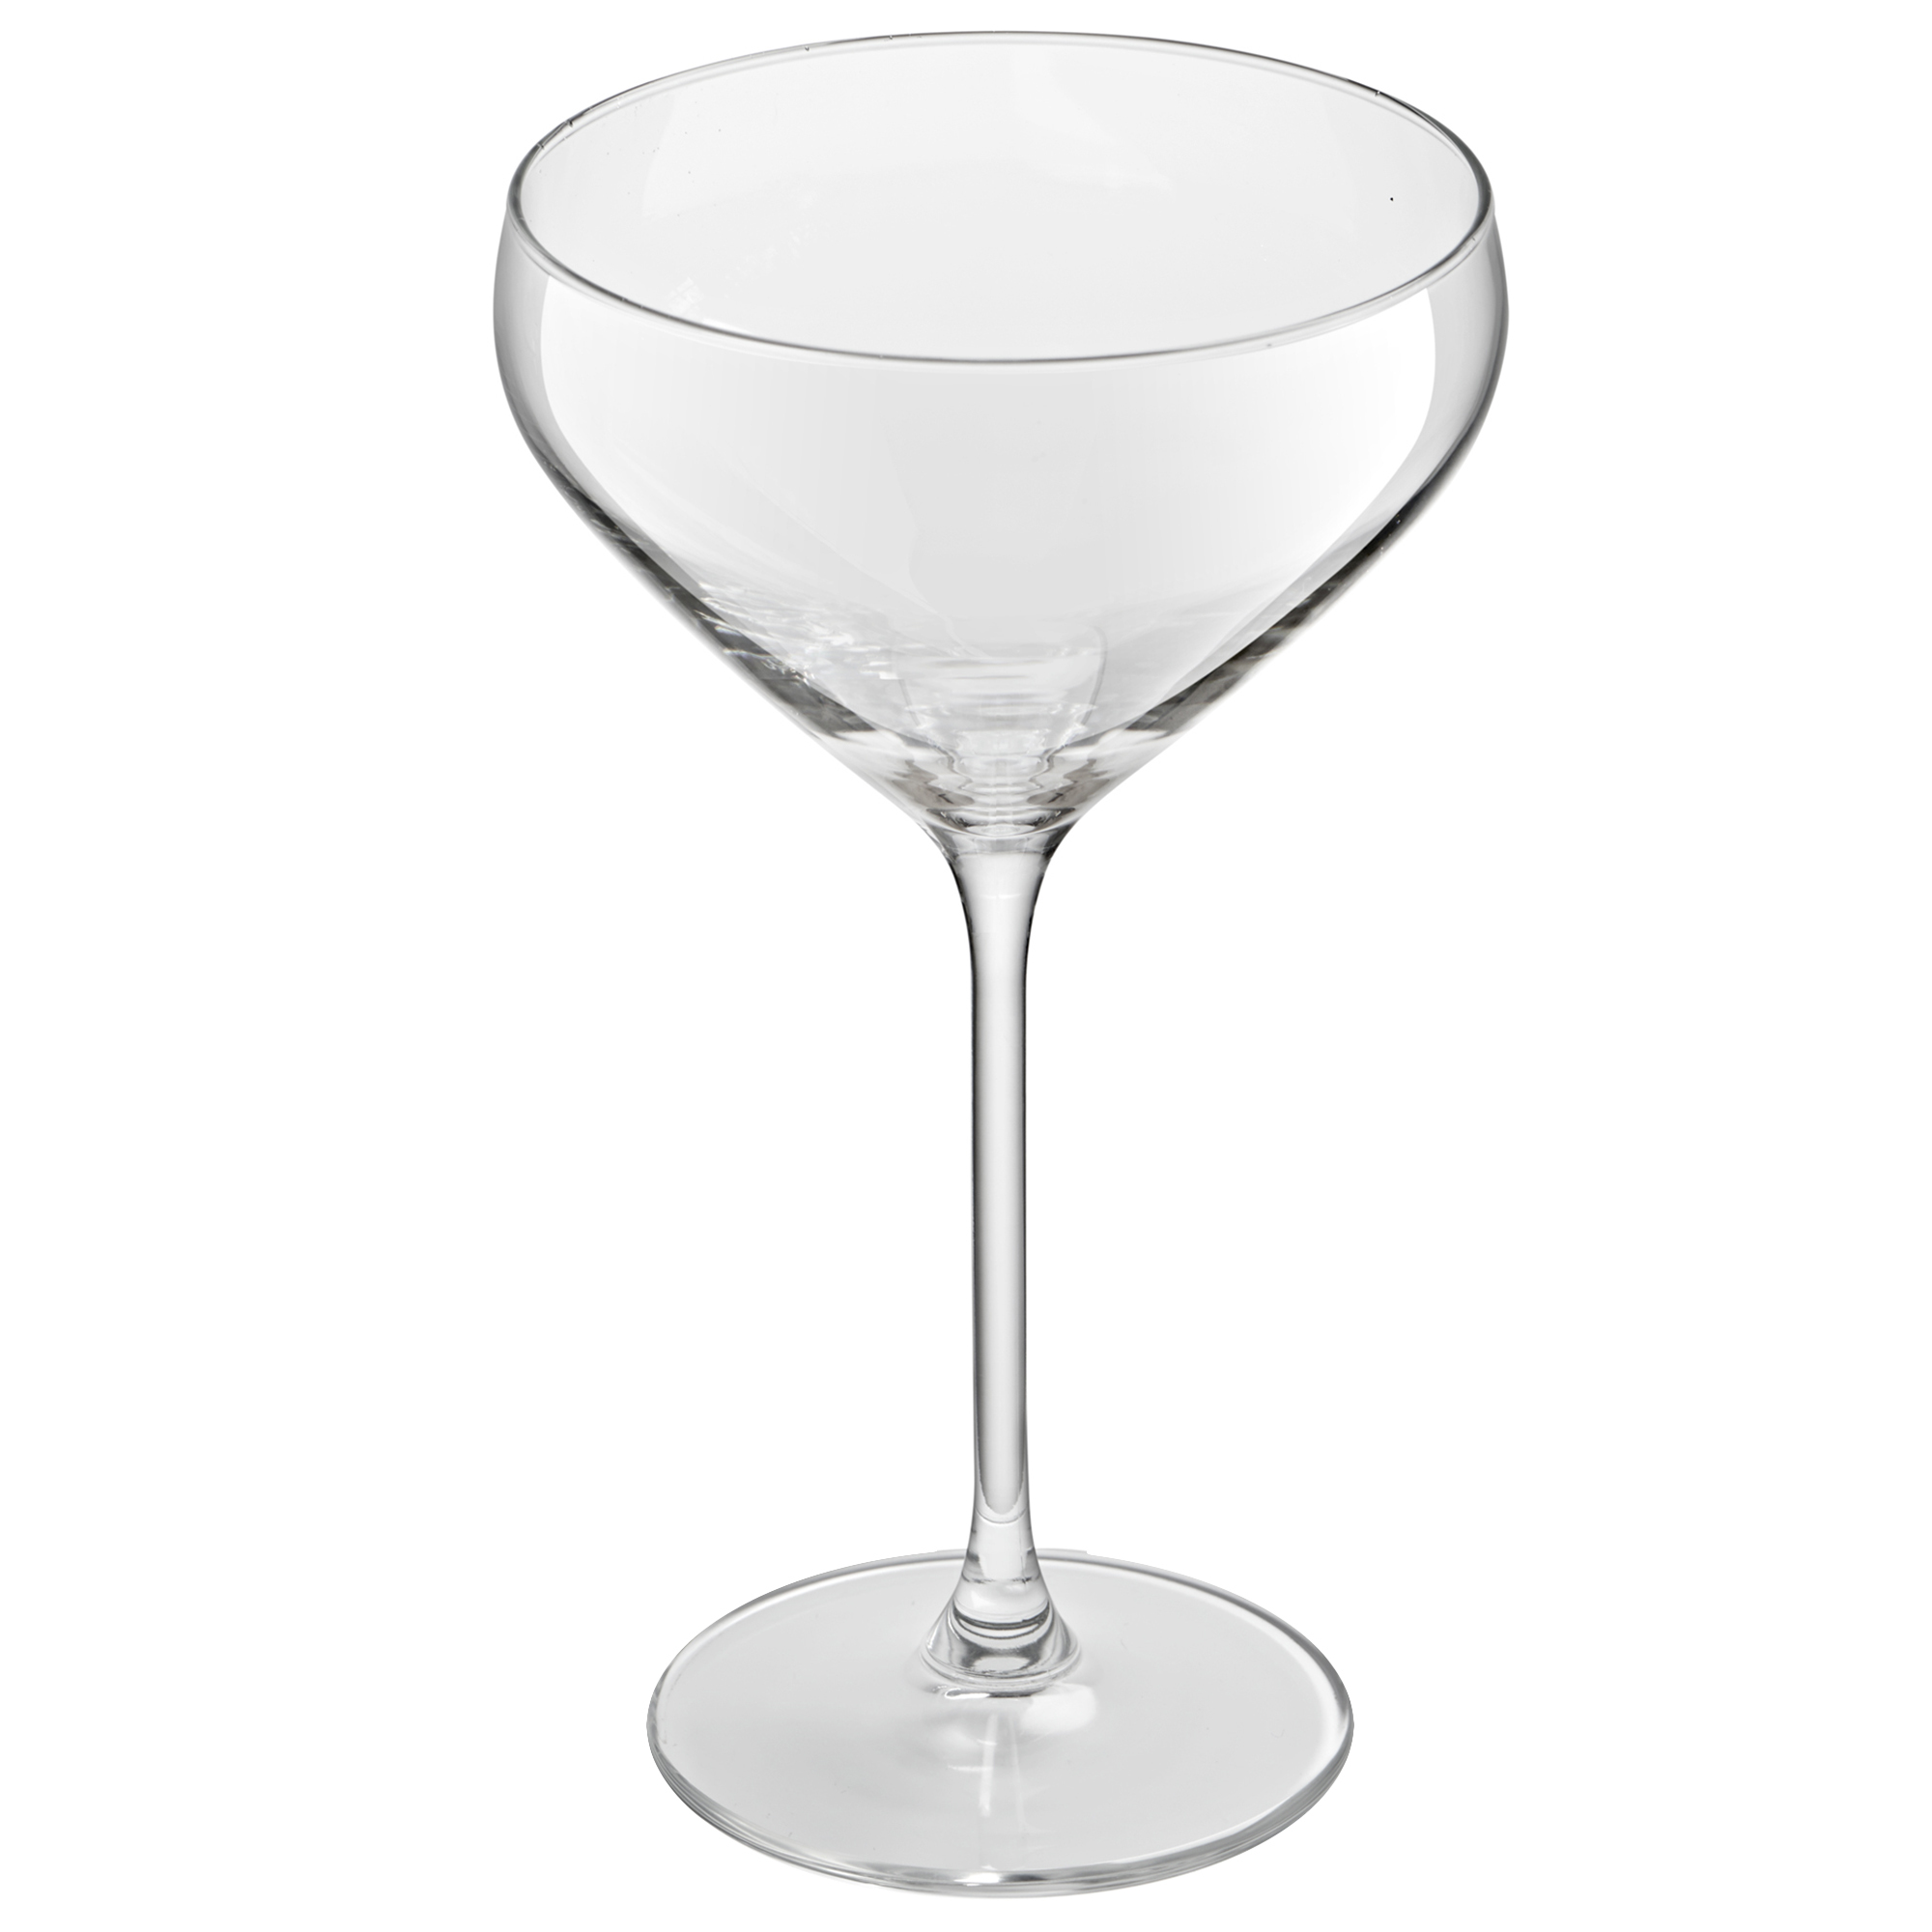 Royalleerdam Maipo 300ml Champagne Coupe Glasses Reviews Temple Webster